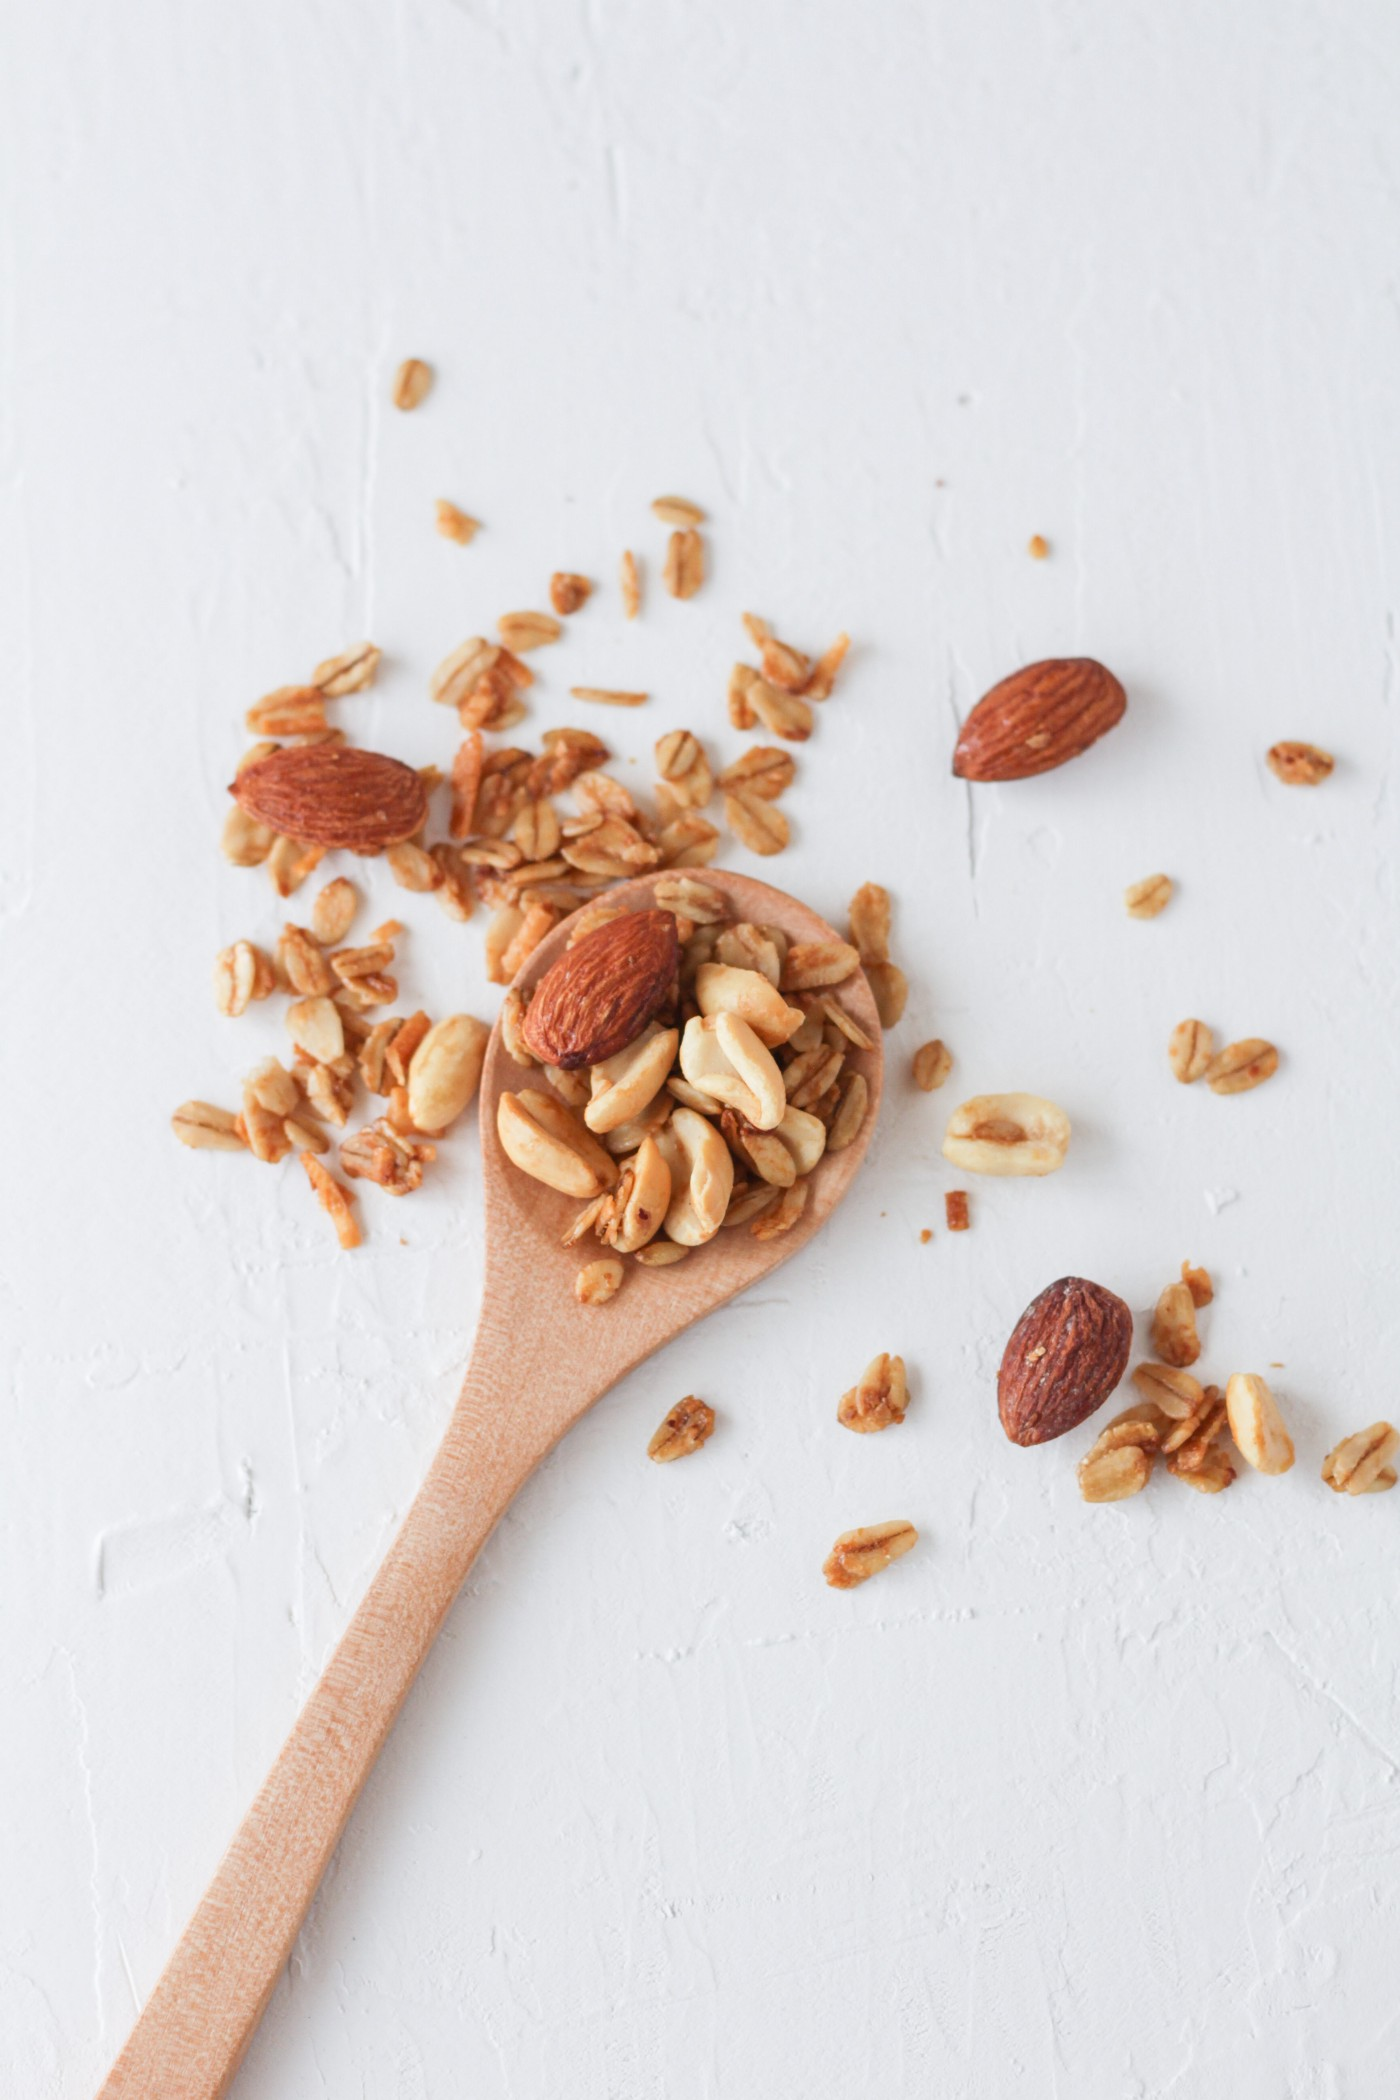 a wooden spoon on a white table with almonds, peanuts and some oatmeal flakes on the spoon and sprinkled on the table around the spoon